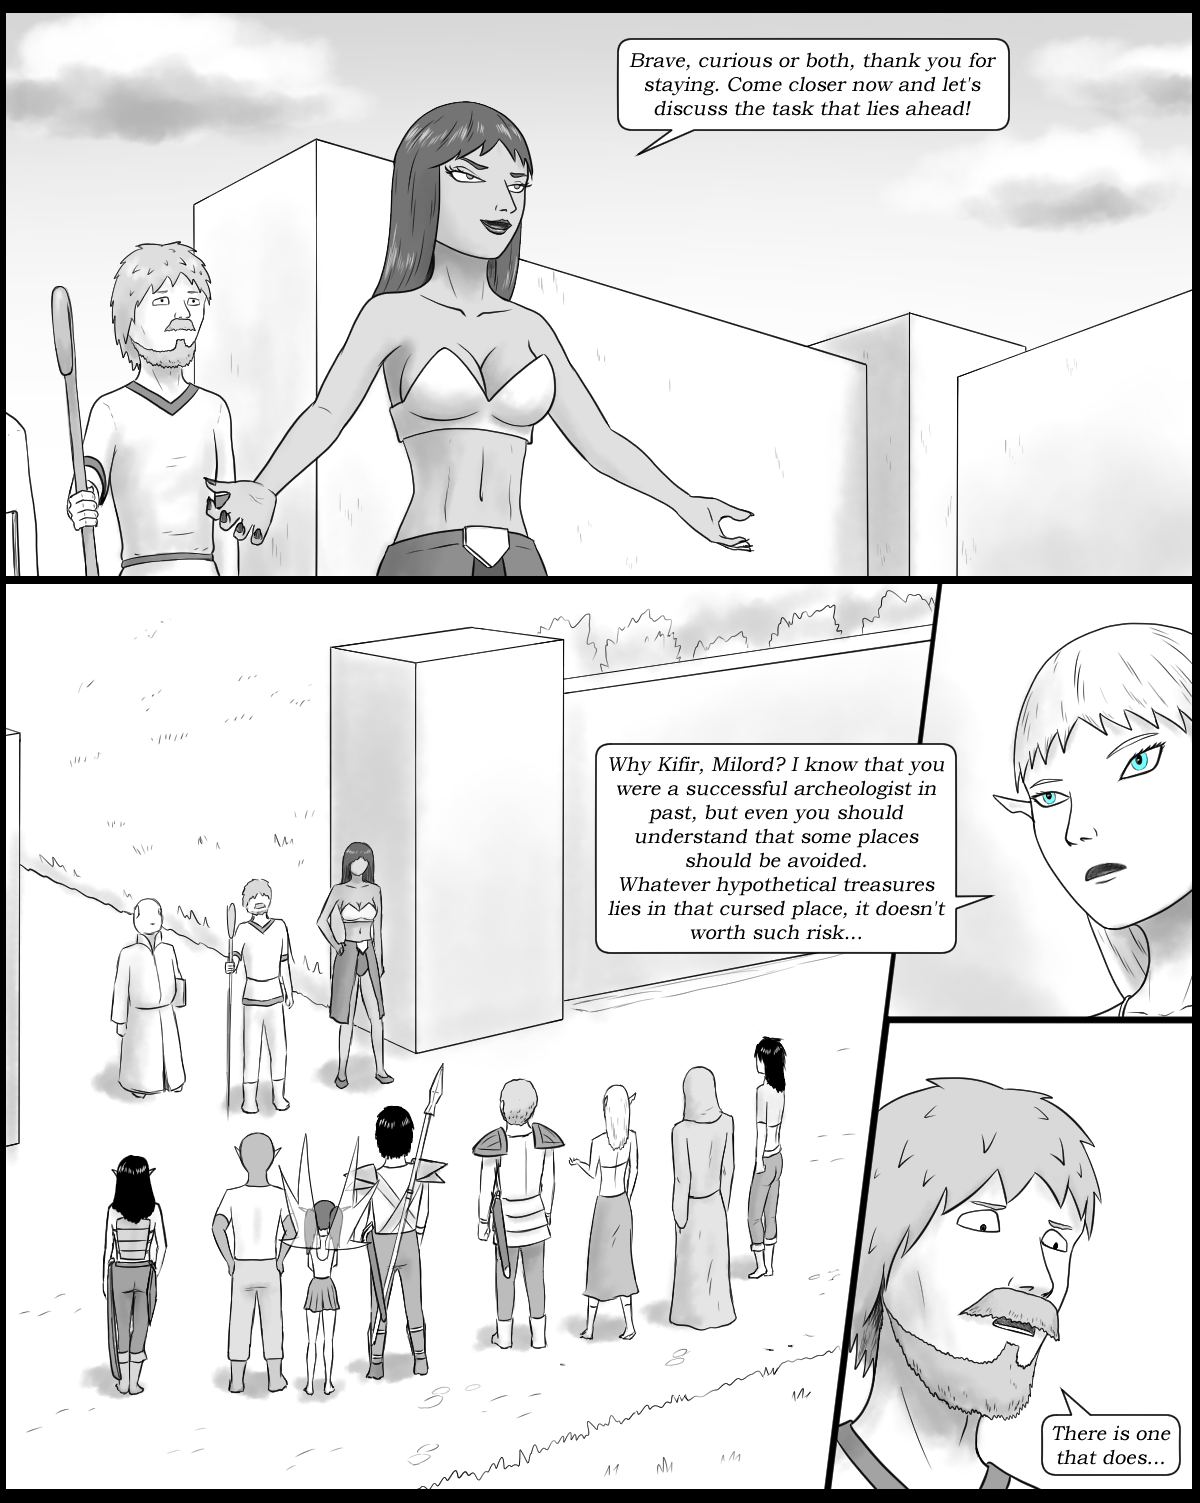 Page 96 - Now we are talking